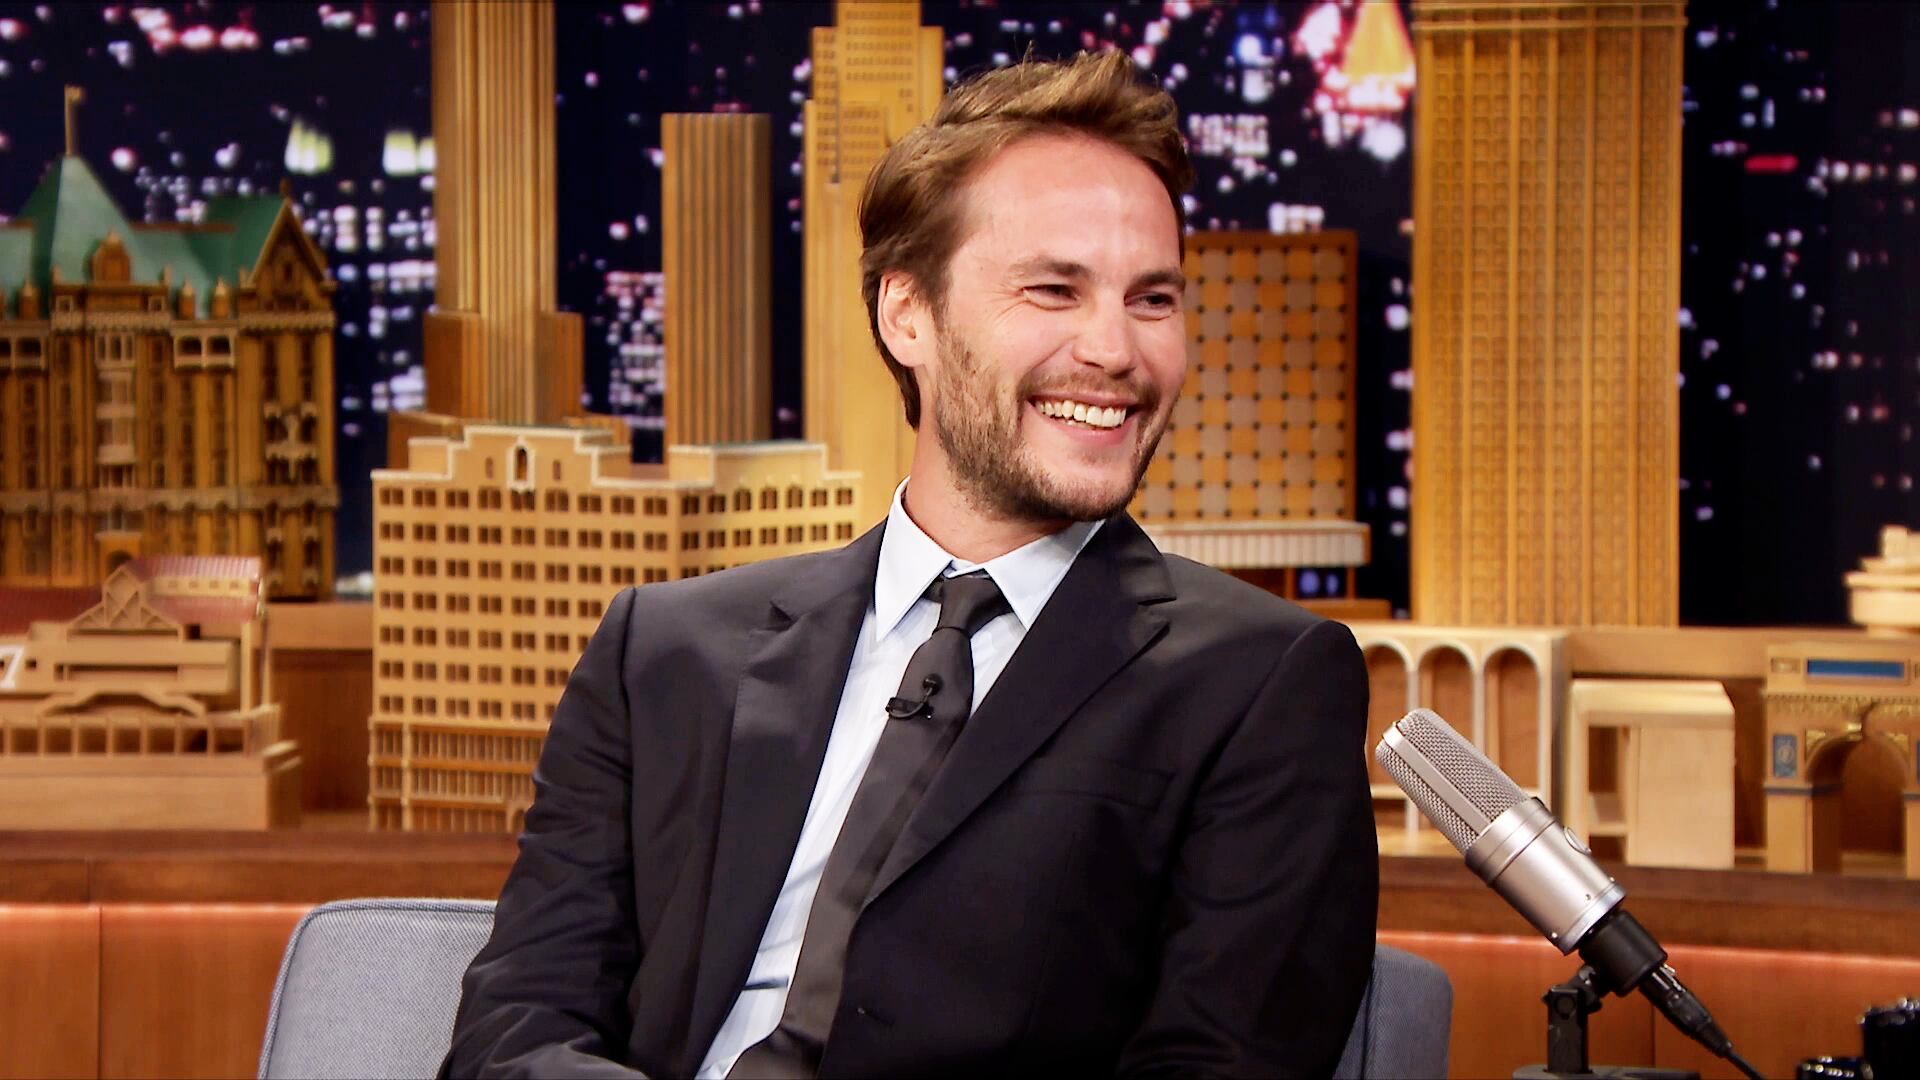 Taylor Kitsch Left a Friend Stranded for True Detective